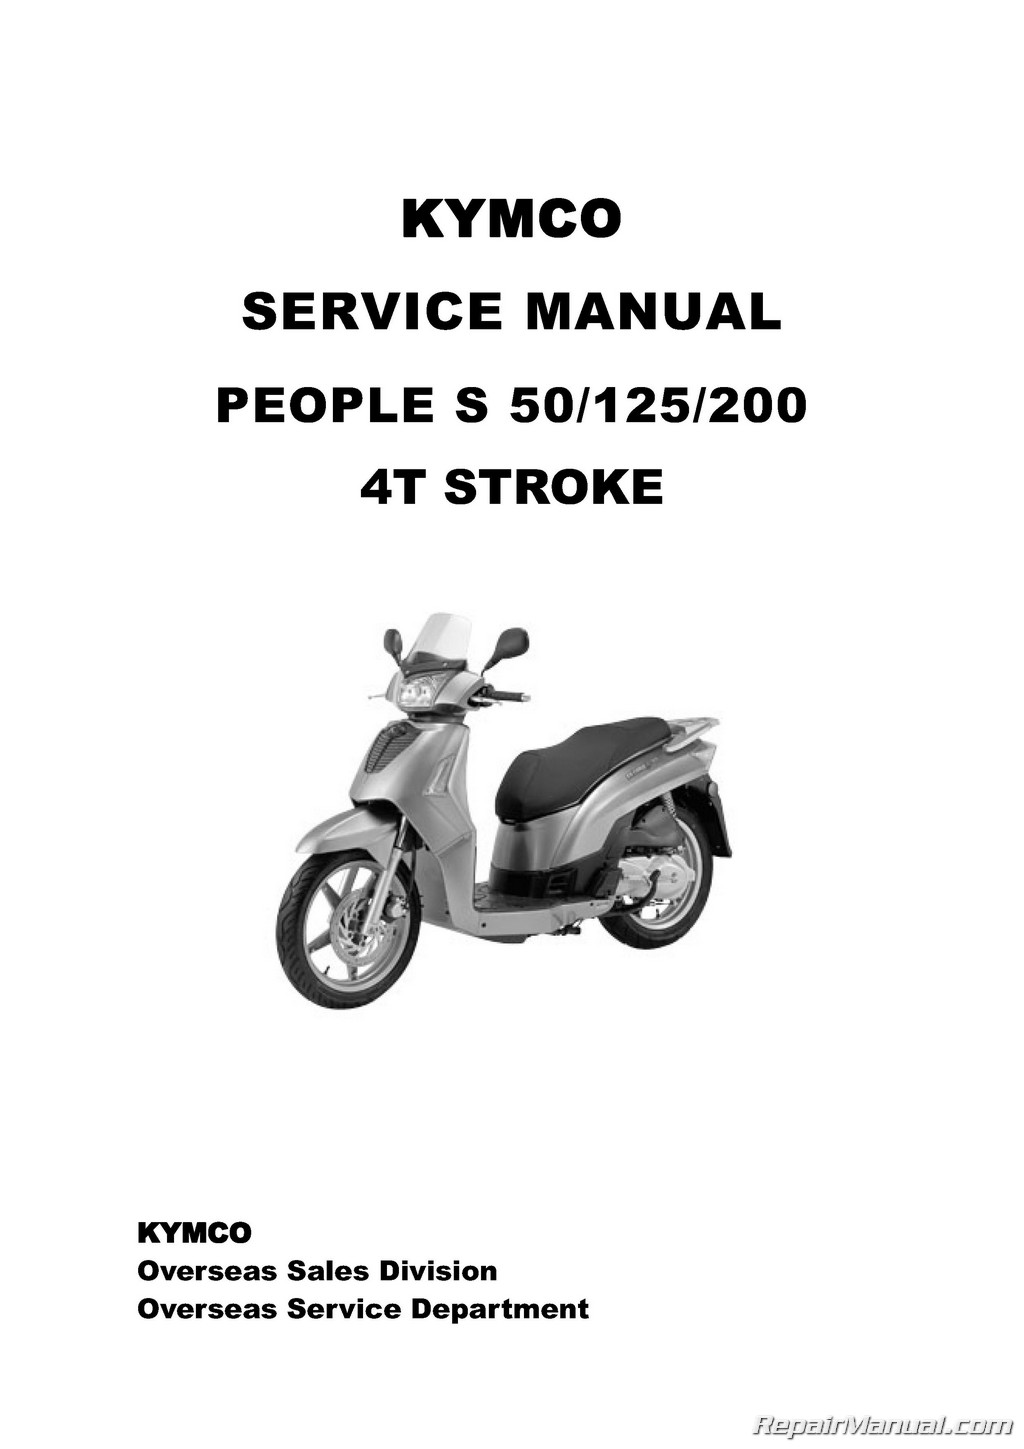 kymco workshop manual